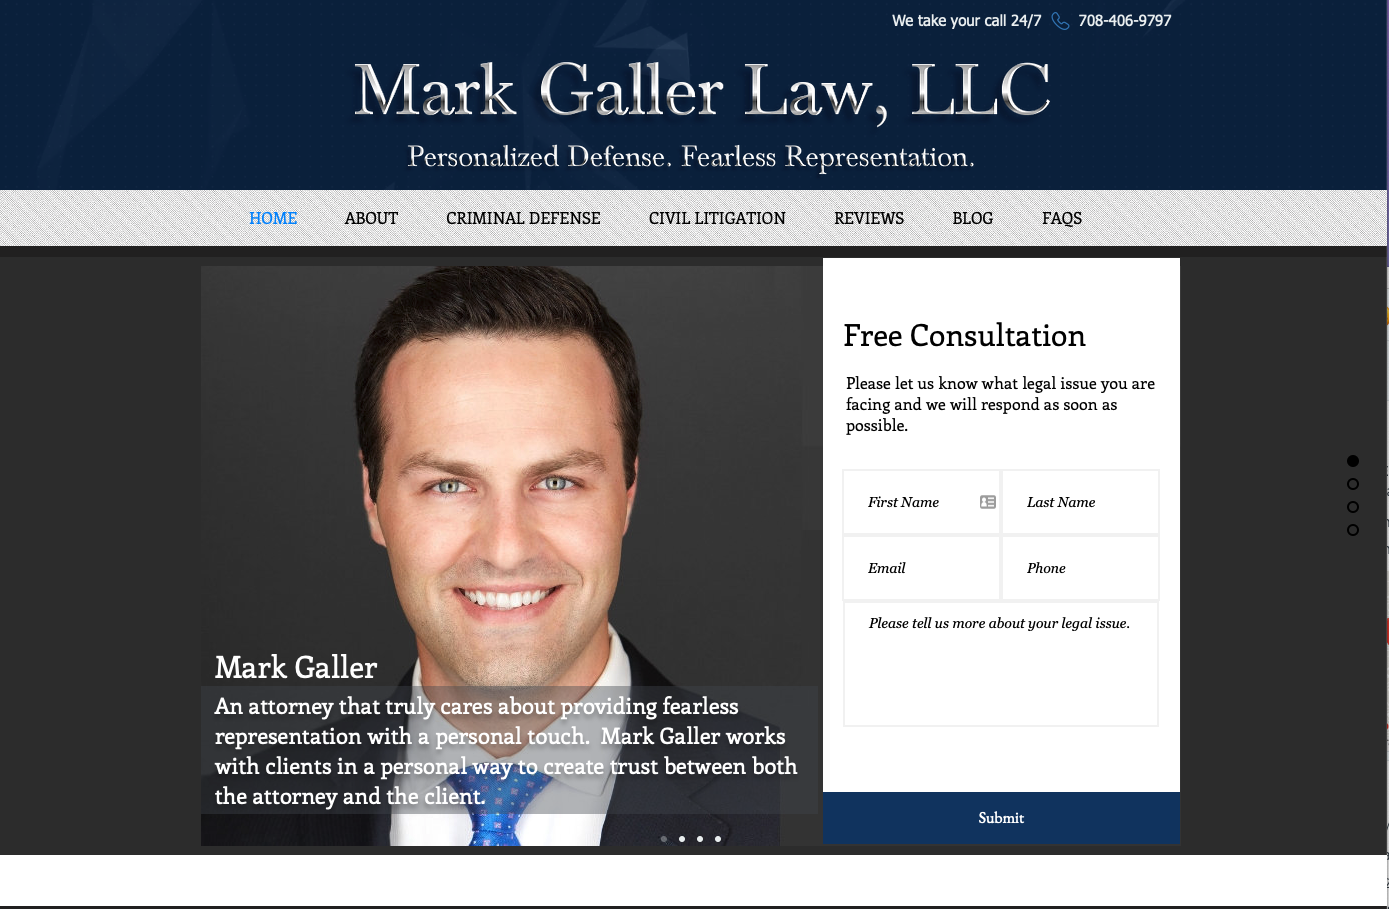 Mark Galler Law